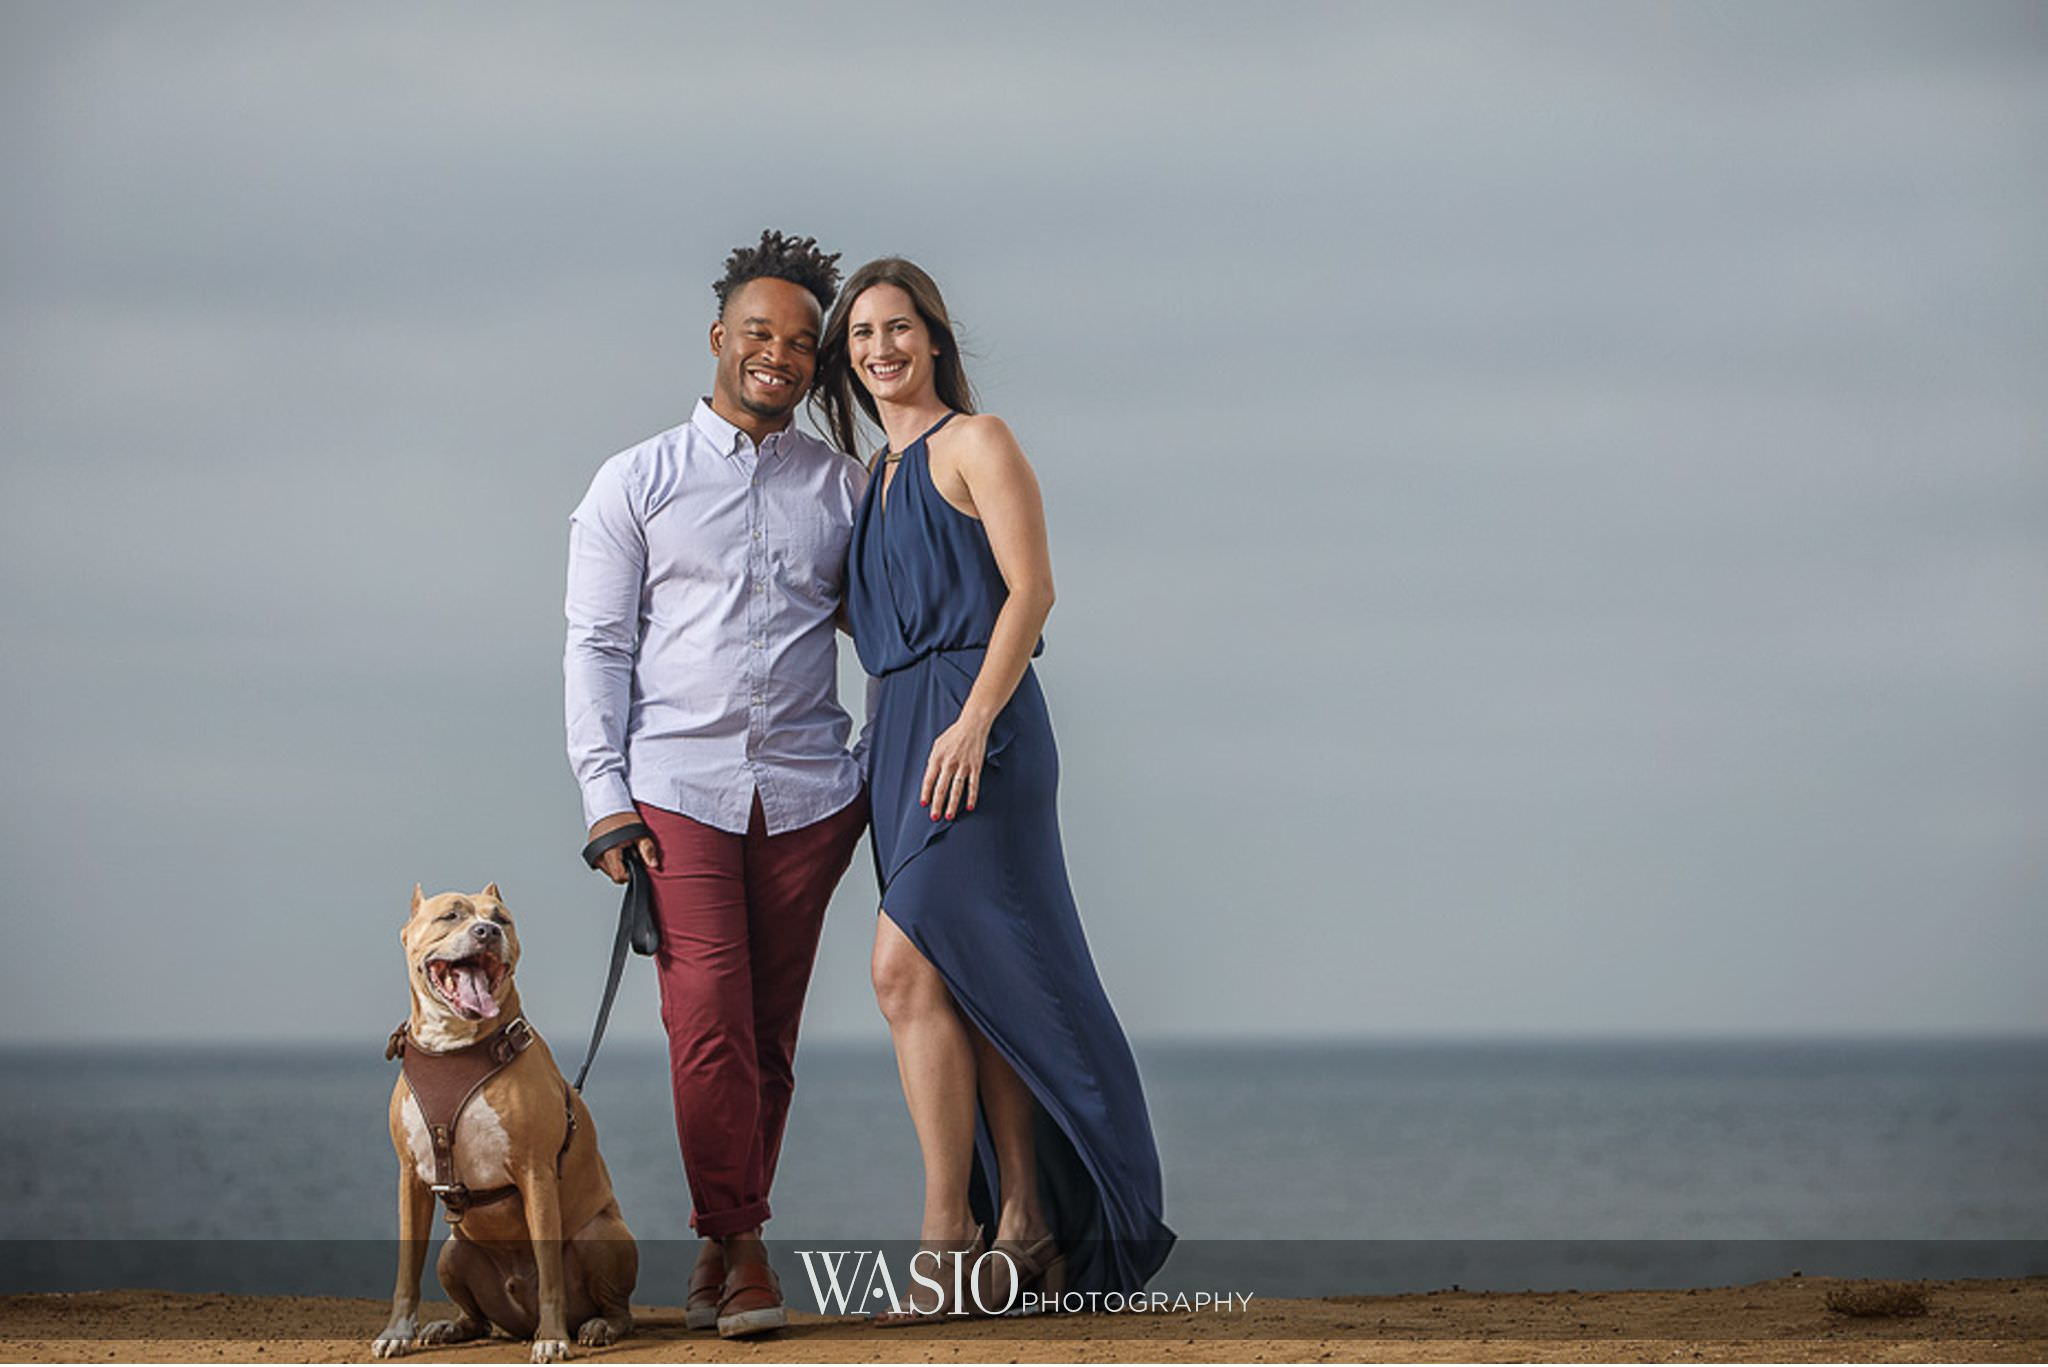 Sunset-Cliffs-San-Diego-Engagement-ocean-puppy-navy-dress-57 Sunset Cliffs San Diego Engagement - Laura and La Broi